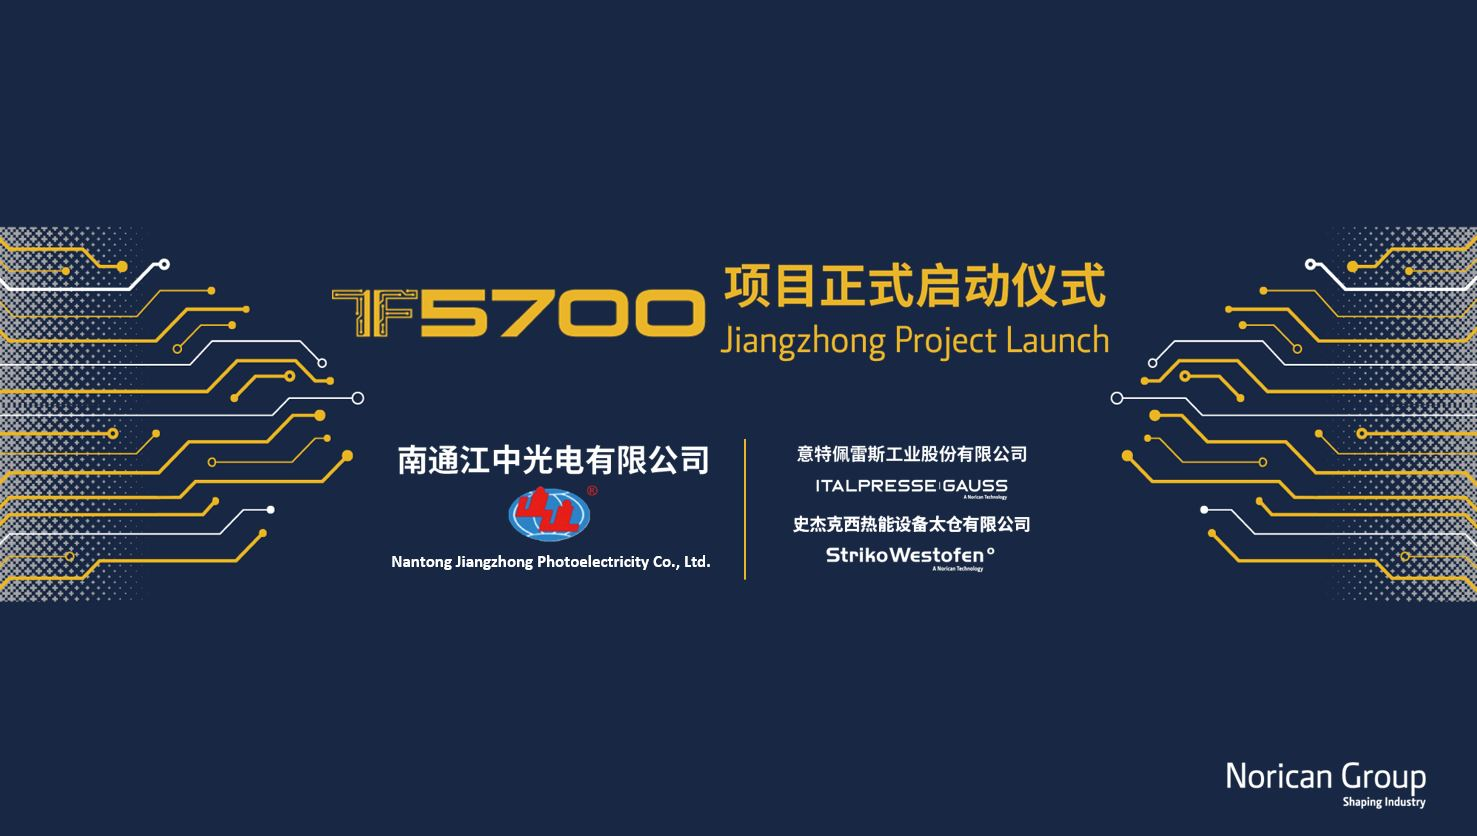 TF5700 Official launch